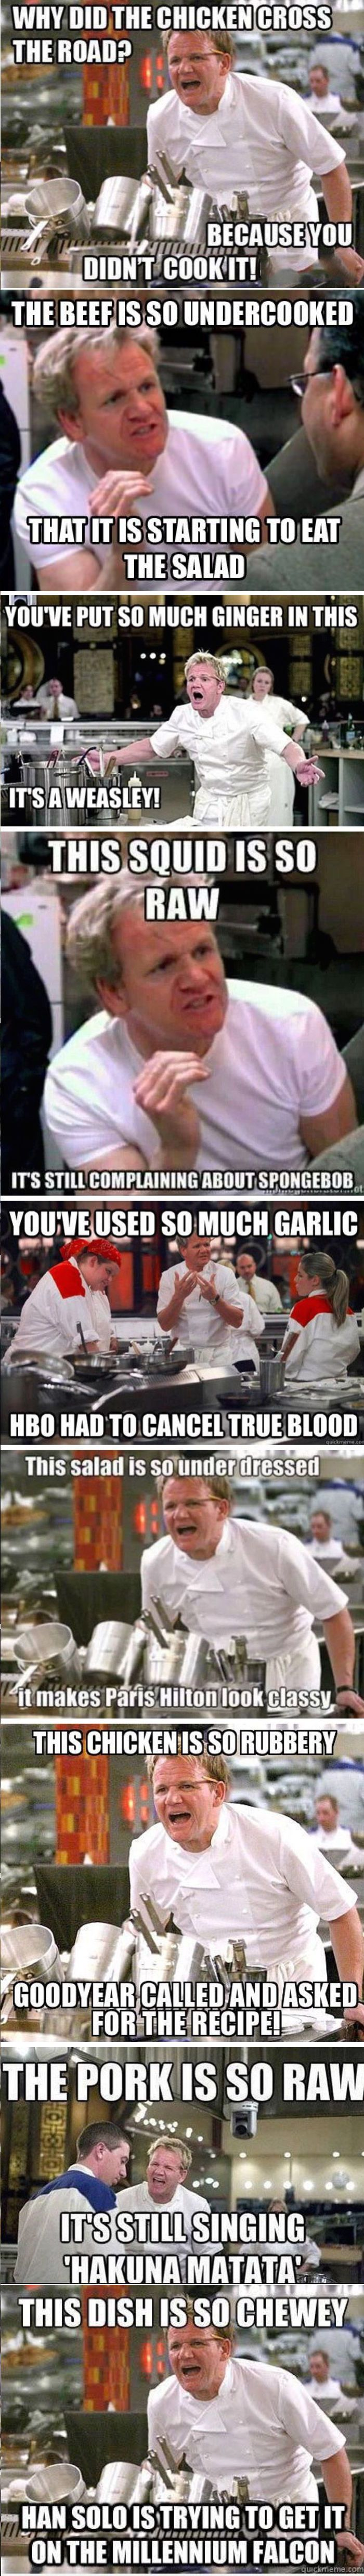 Gordon Ramsey's Angriest Moments